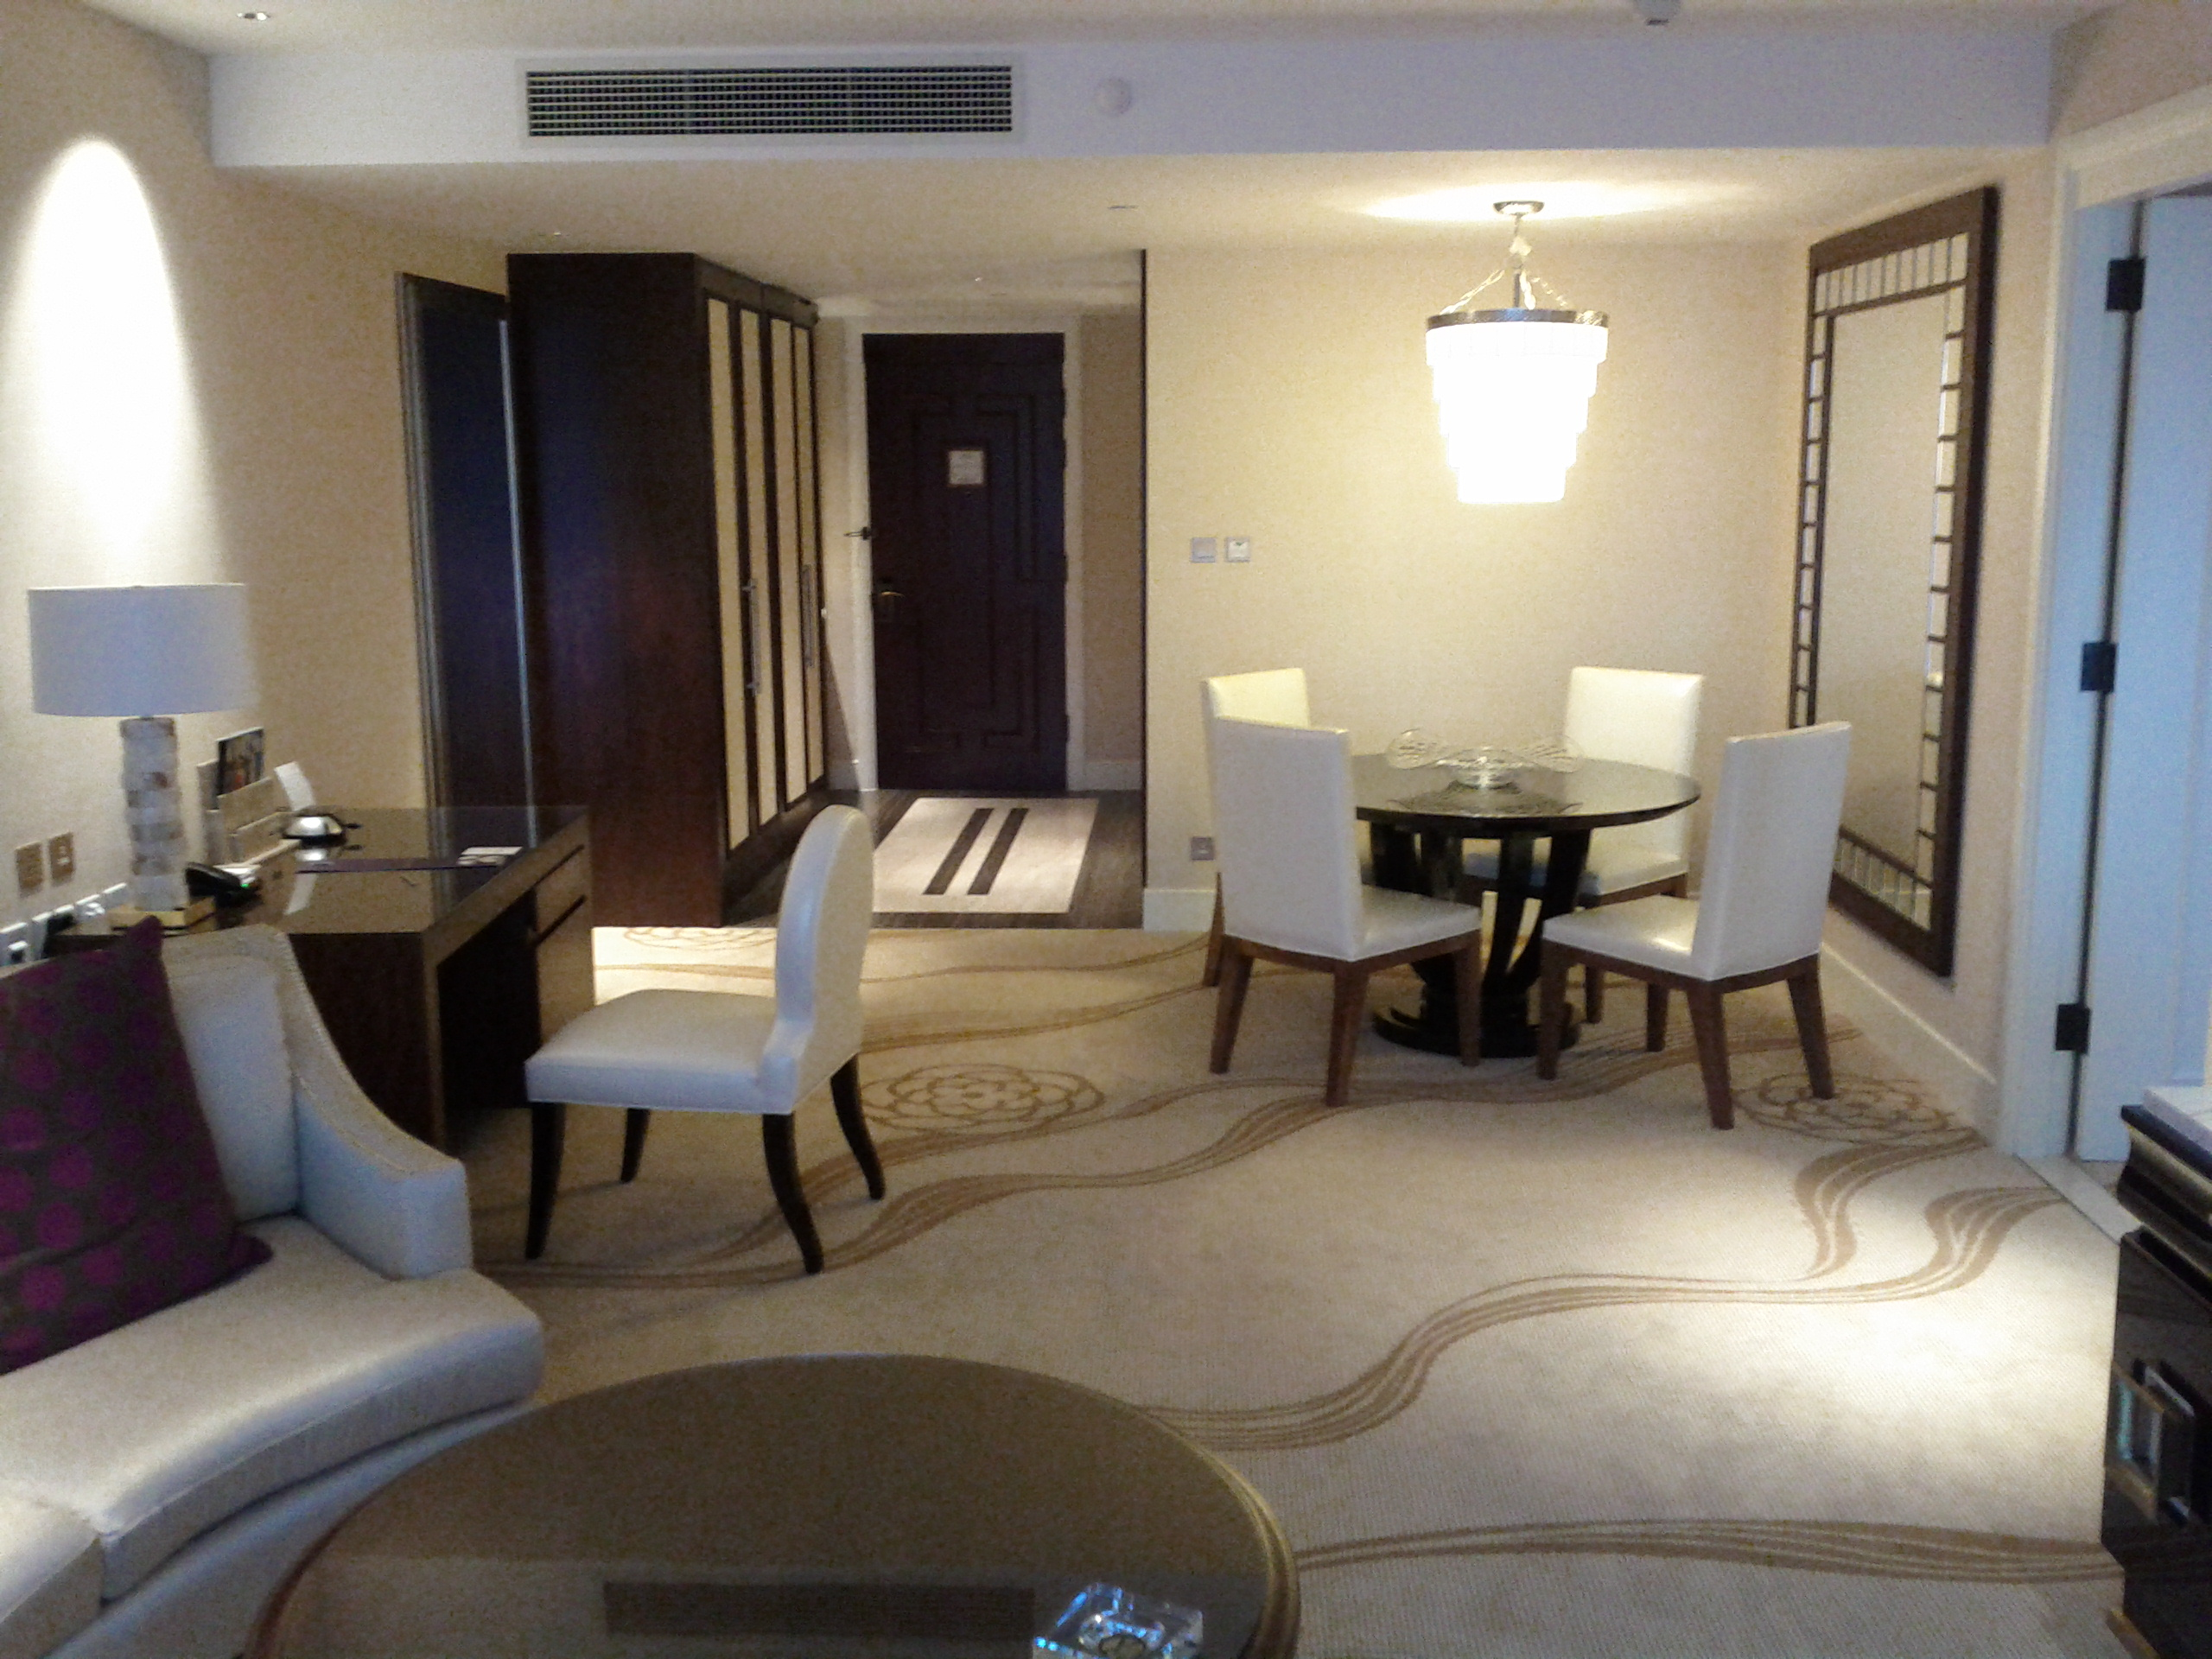 Conrad Macao  Review of My Stay  LoyaltyLobby